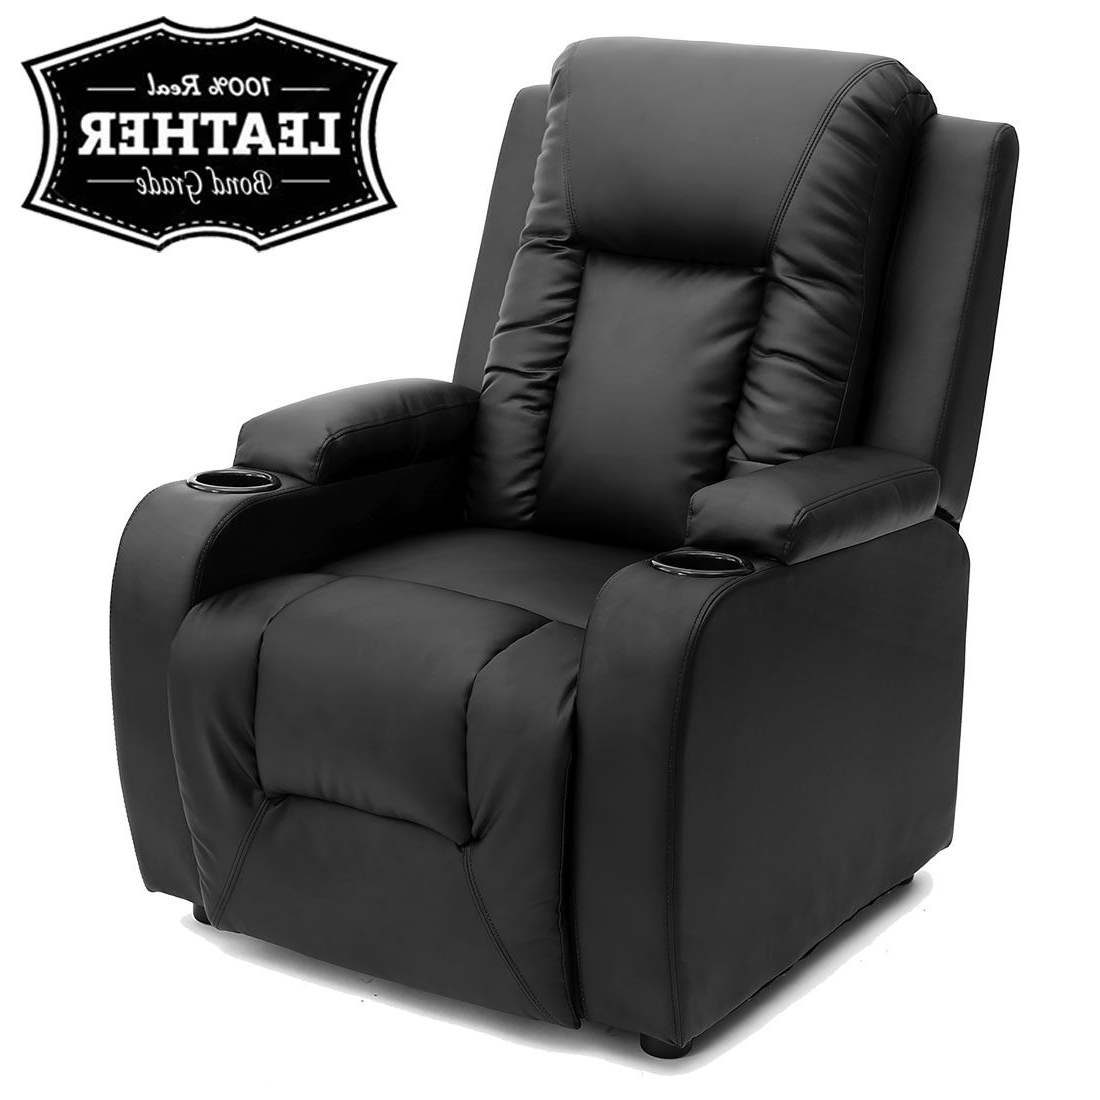 Sofa Chair Recliner Intended For Favorite Oscar Leather Recliner W Drink Holders Armchair Sofa Chair Reclining (View 13 of 20)